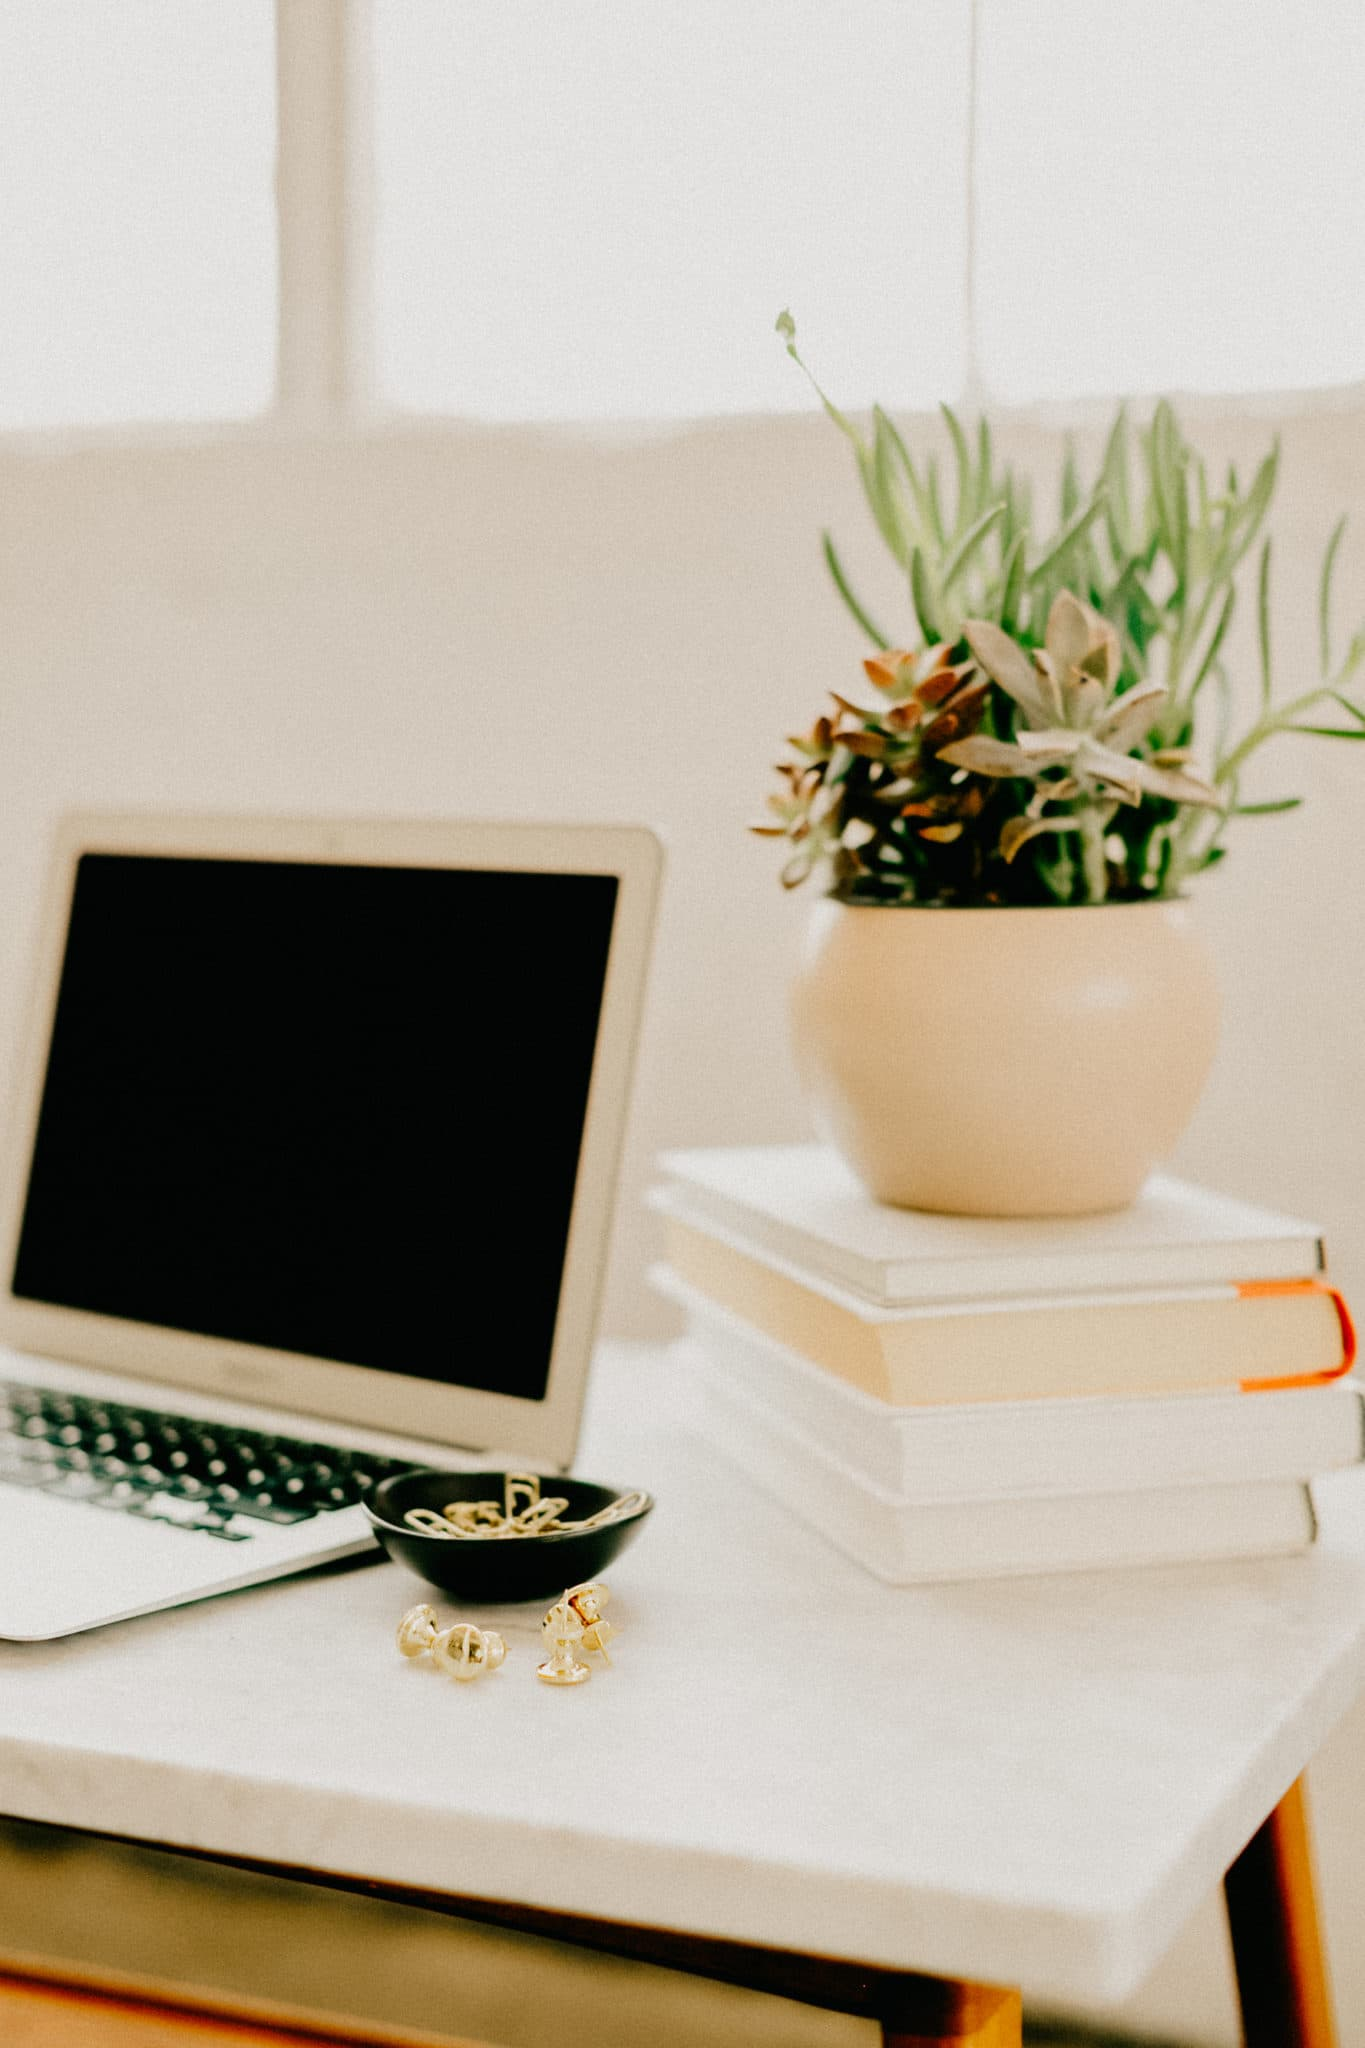 Fresh Content: How to Improve Workplace Productivity